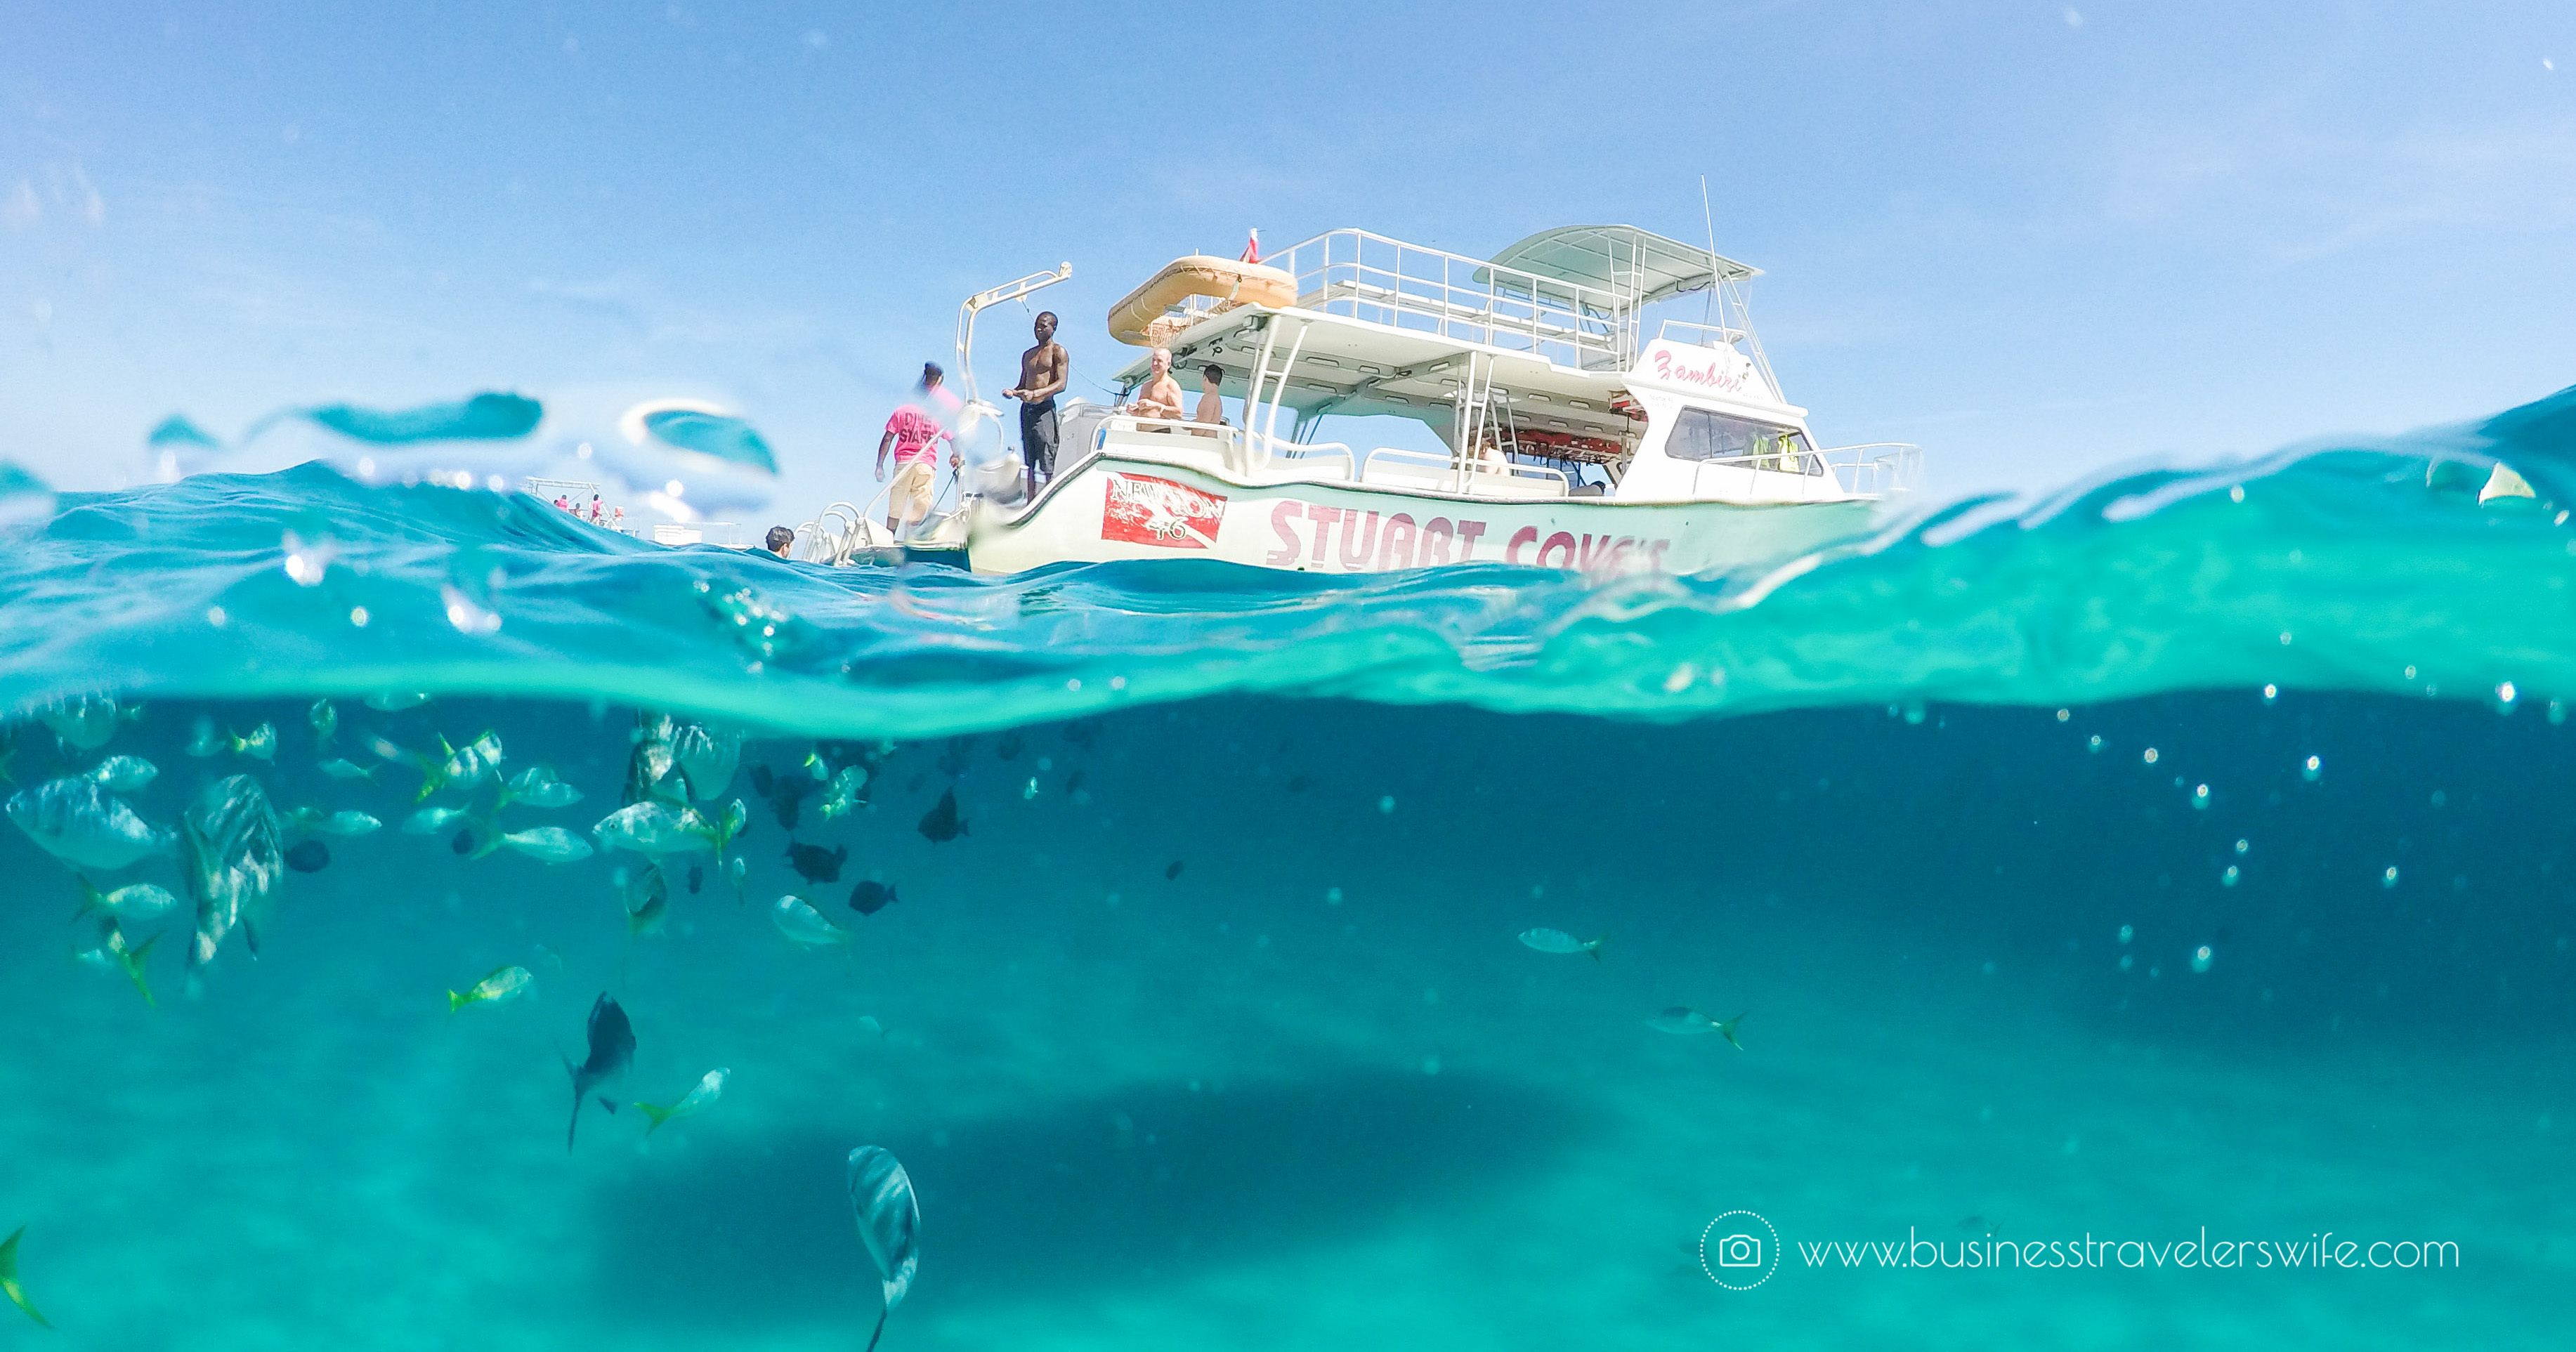 @businesstravelerswife's cover photo for 'Amazing Snorkeling Tour with Stuart Cove's Dive Bahamas'